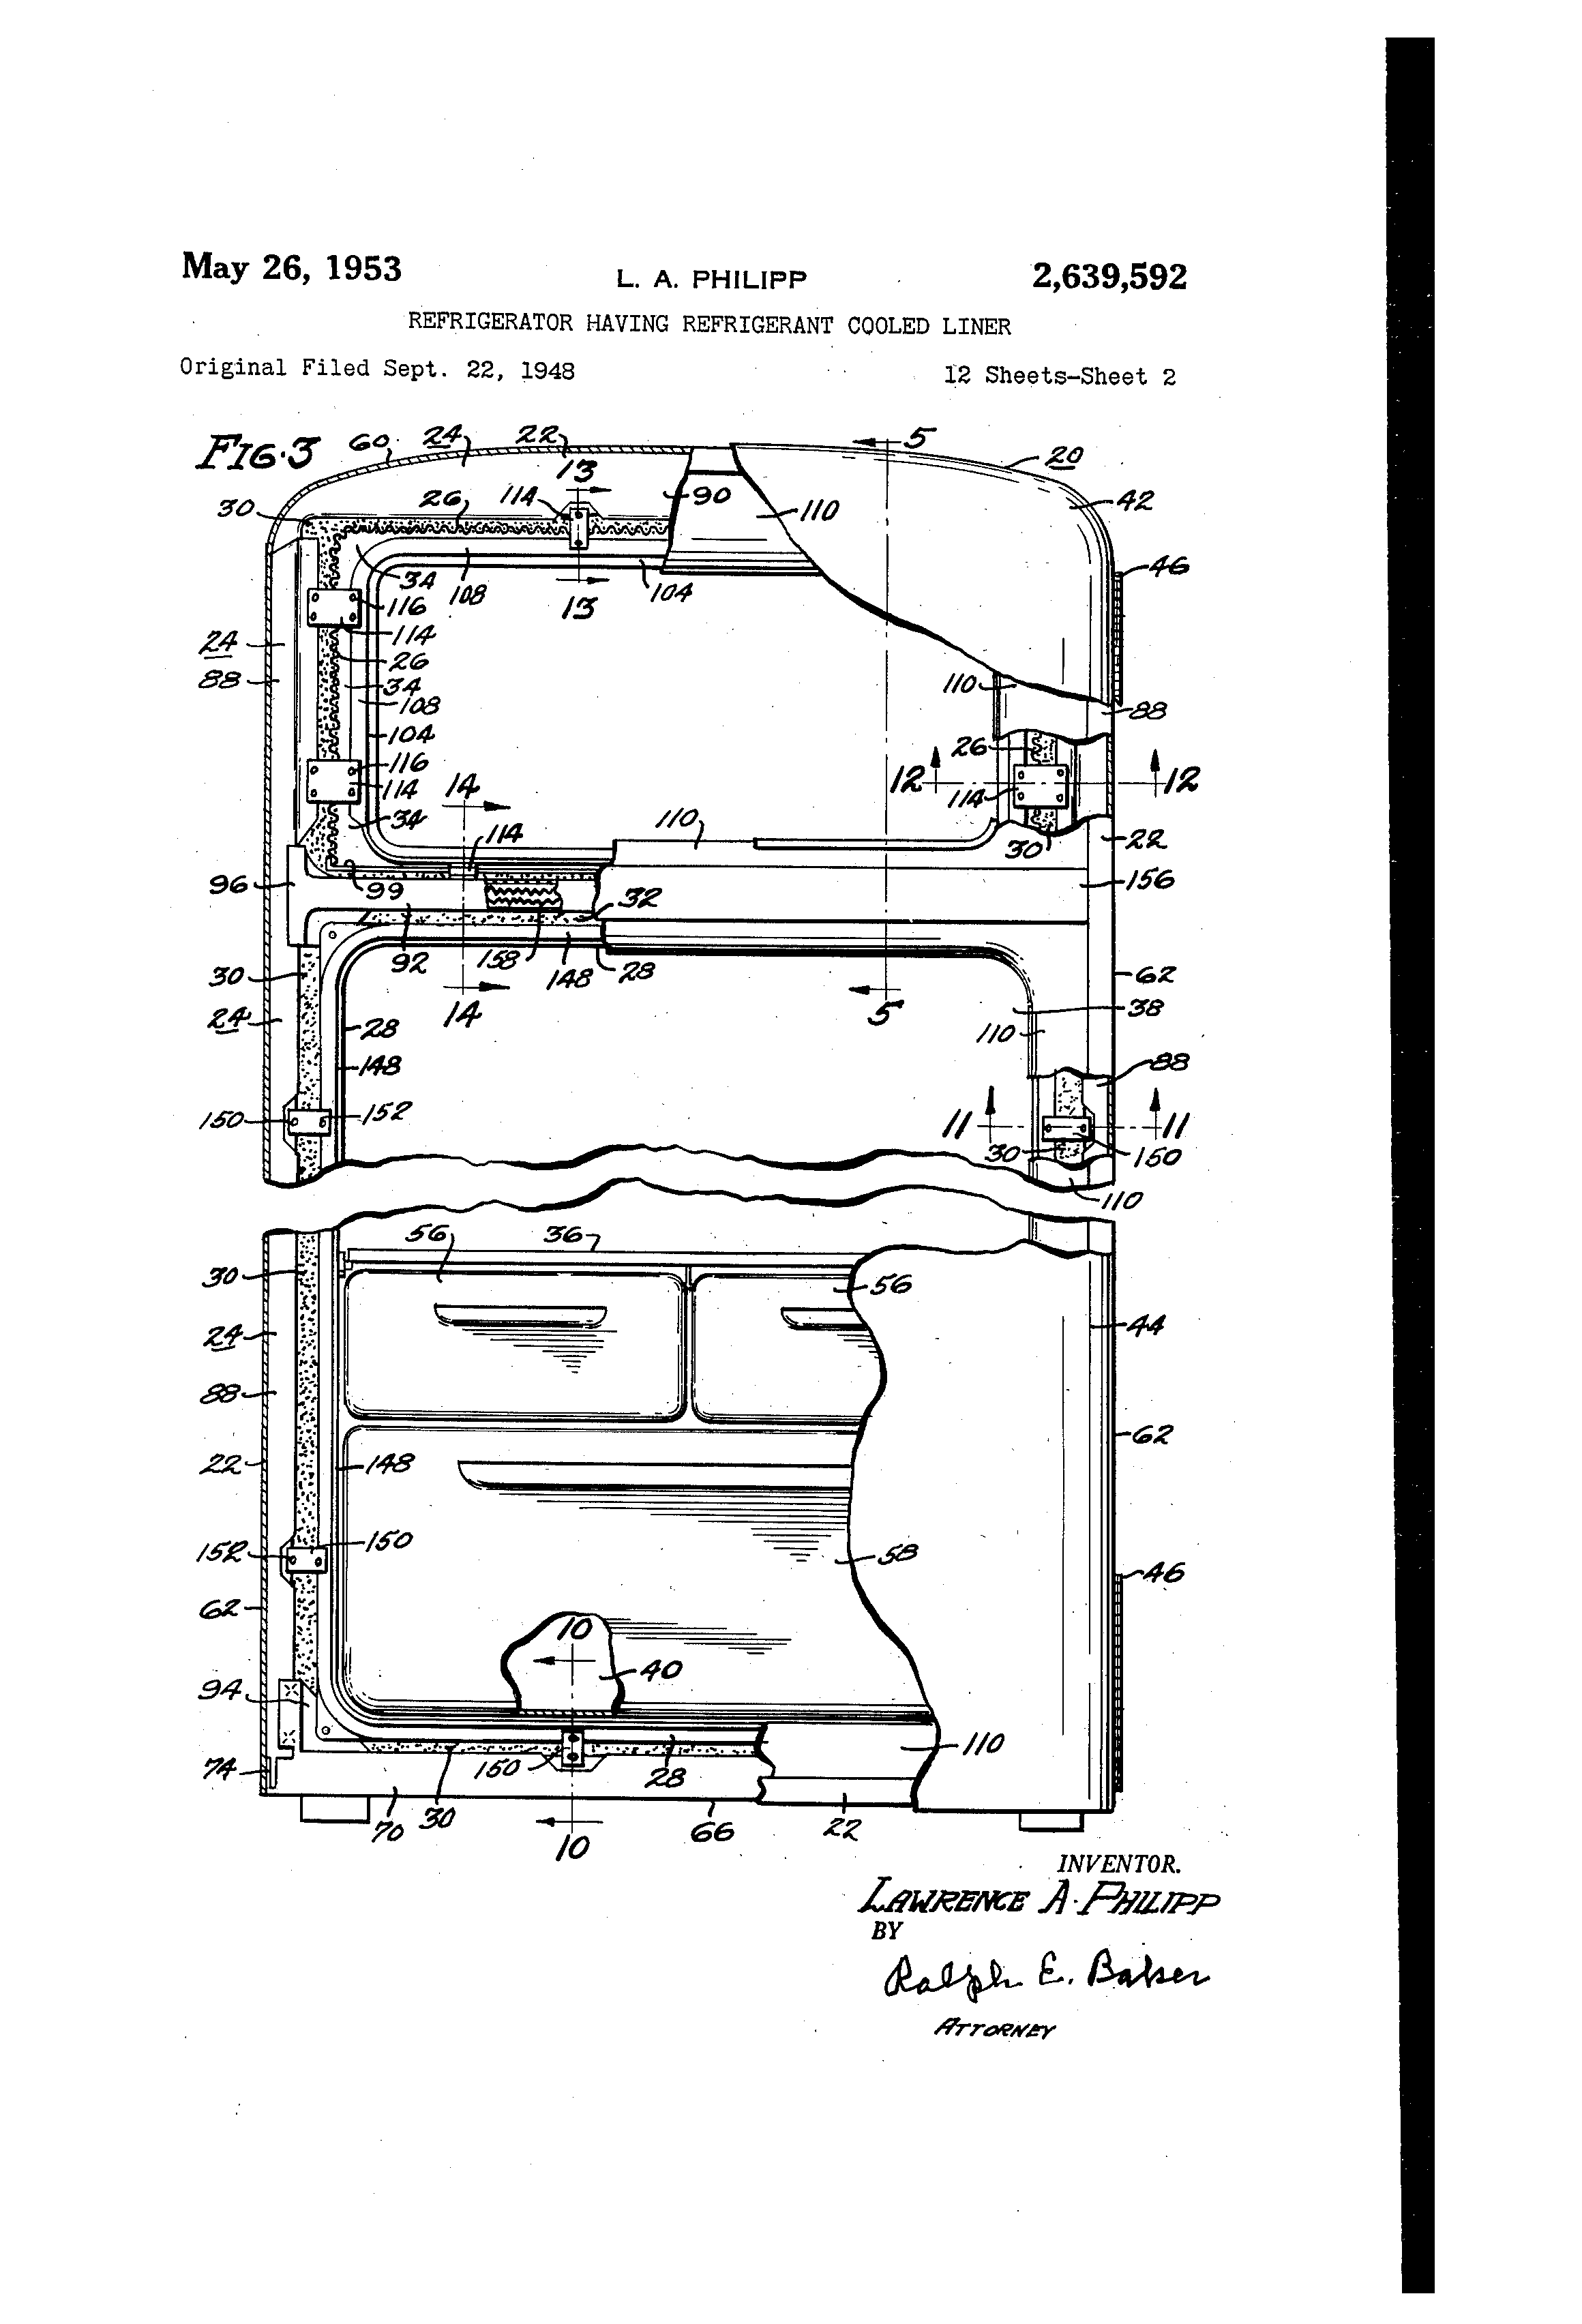 1965 Mustang Wiring Diagrams also 676278 Wiring Help furthermore Throwback Thursday Lets Take A Look At Chevrolets Iconic Small Block also Electric Power Steering Rack Location together with 1937 Chevy Brake Pedal 1954advance. on 1956 ford main line wiring diagram